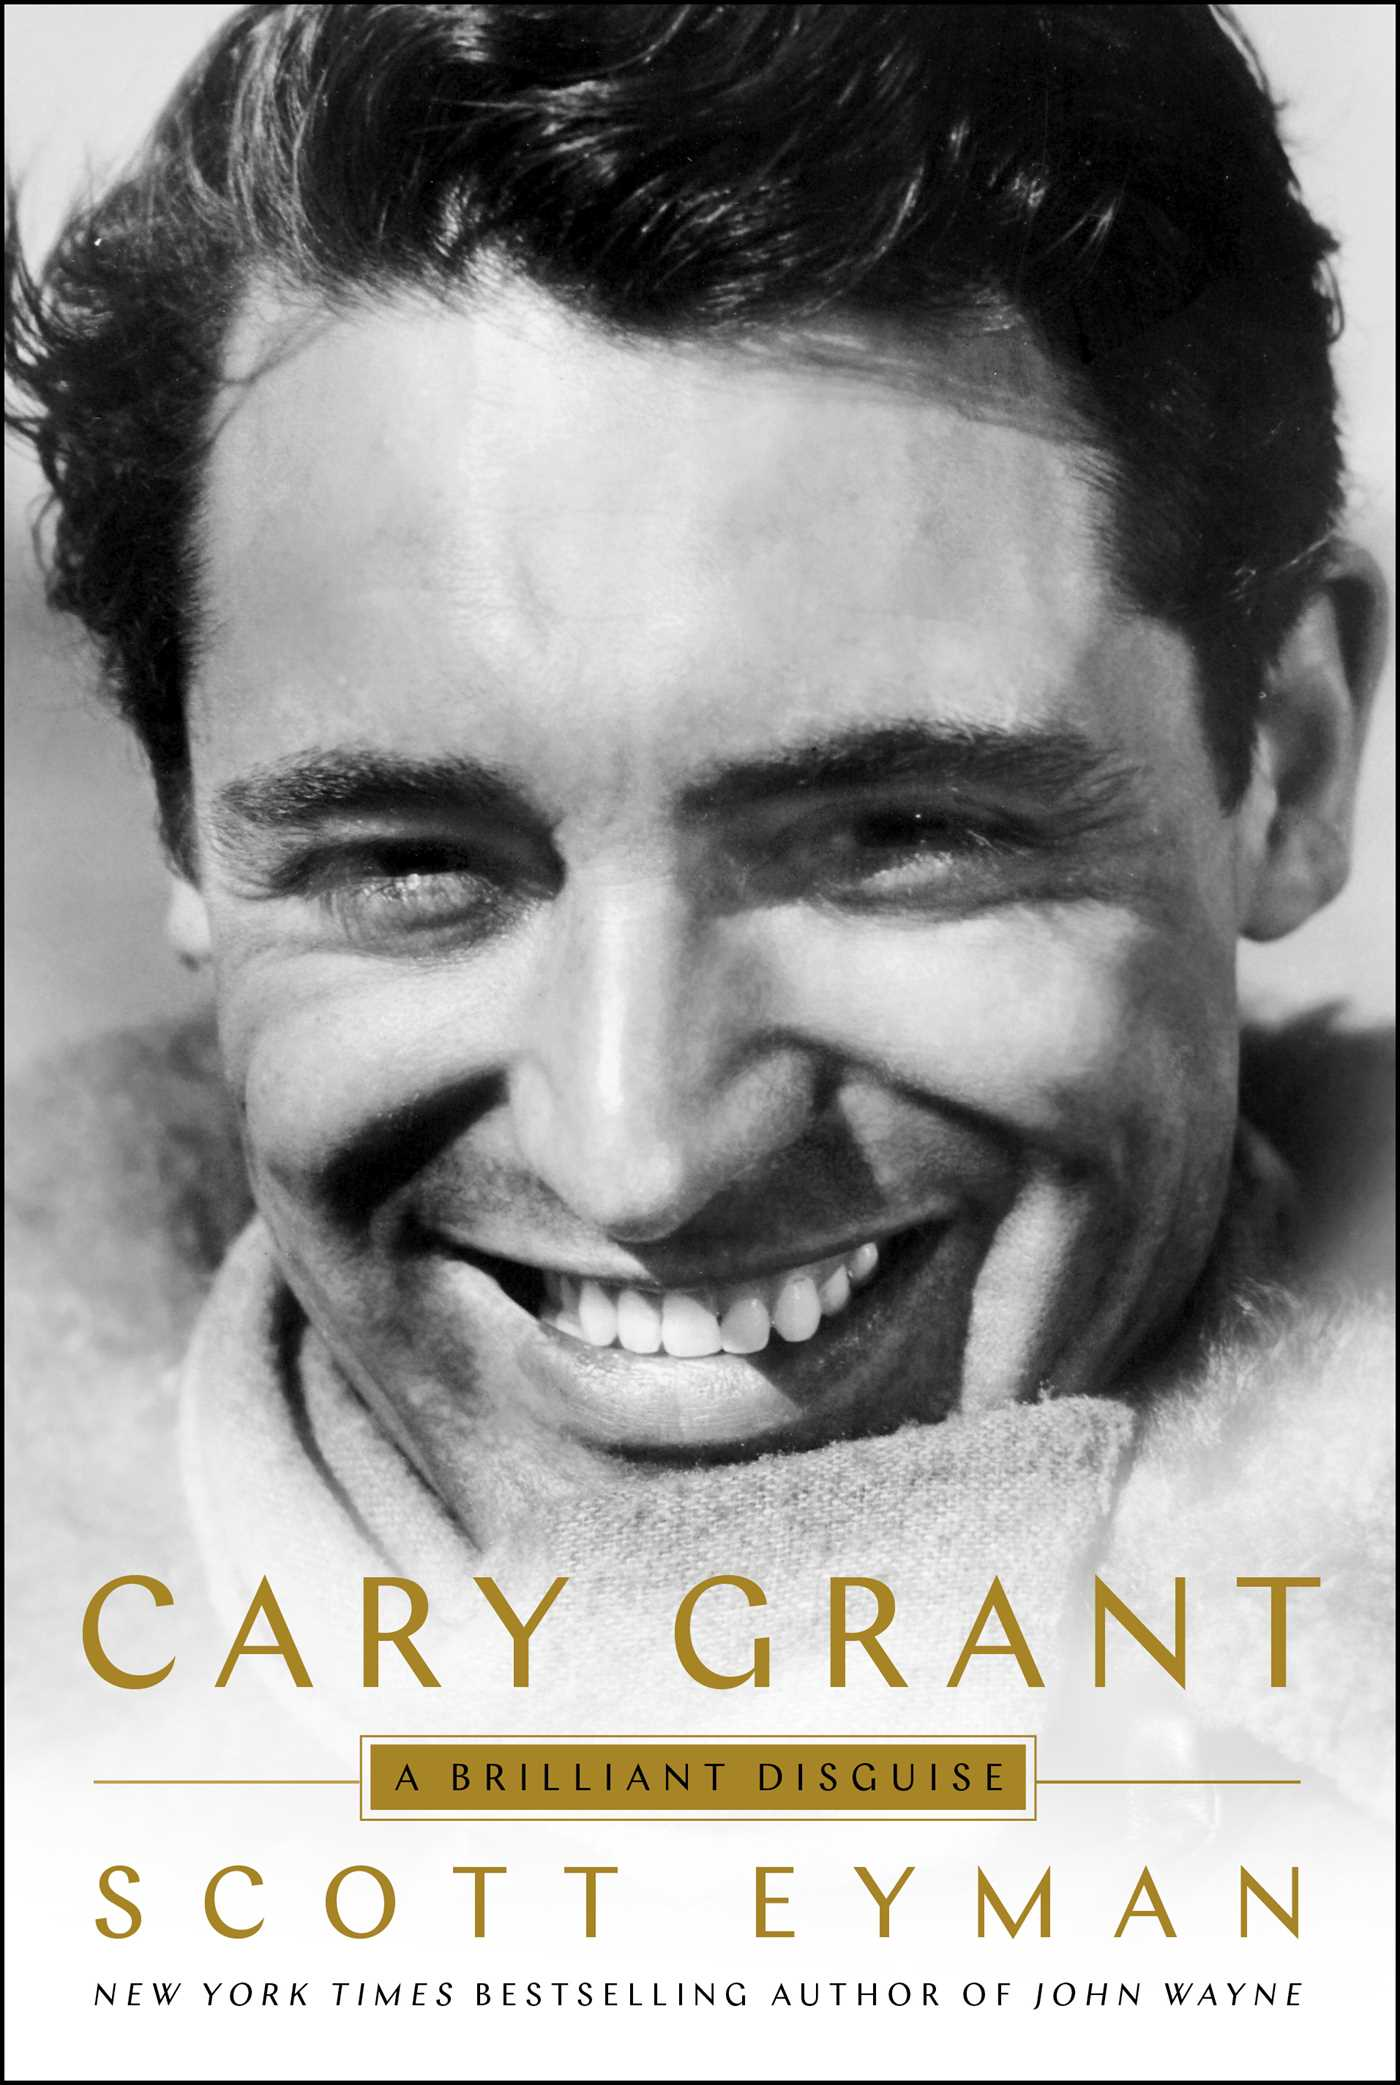 Cary Grant: A Brilliant Disguise